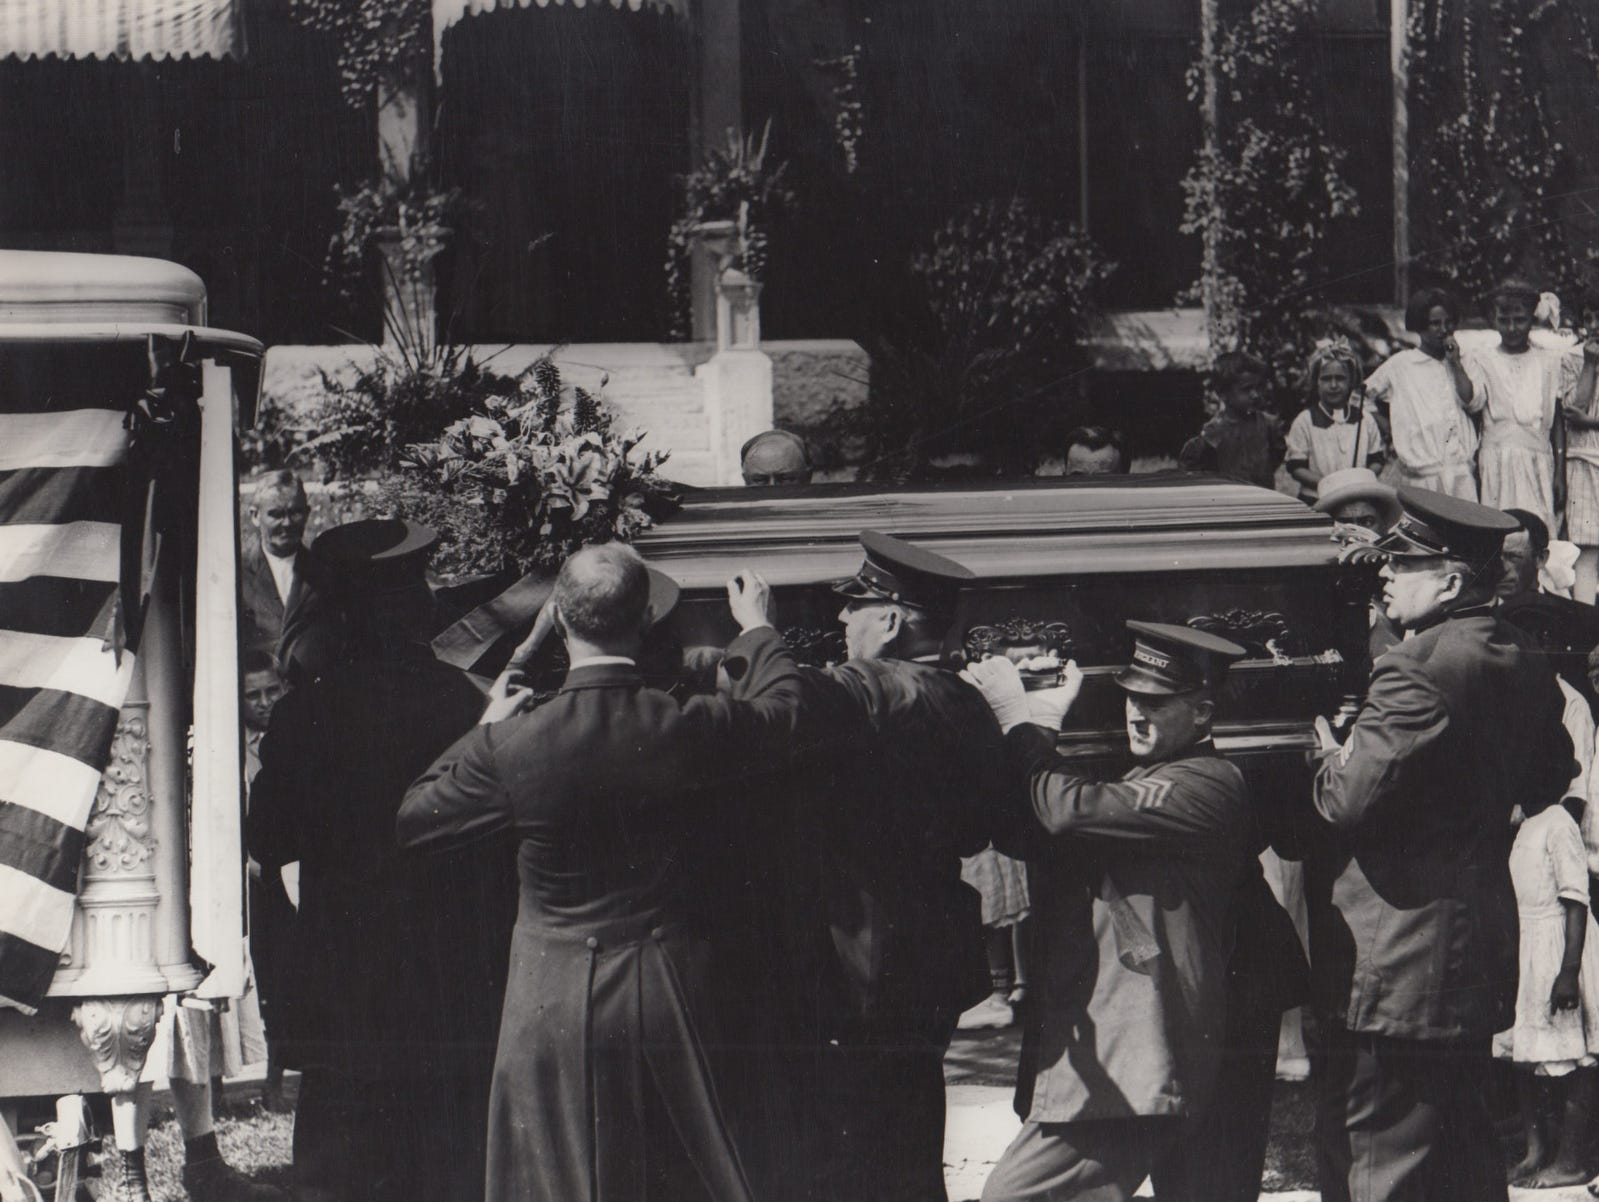 Members of the Indianapolis police department place the casket of James Whitcomb Riley into the hearse, July 25, 1916